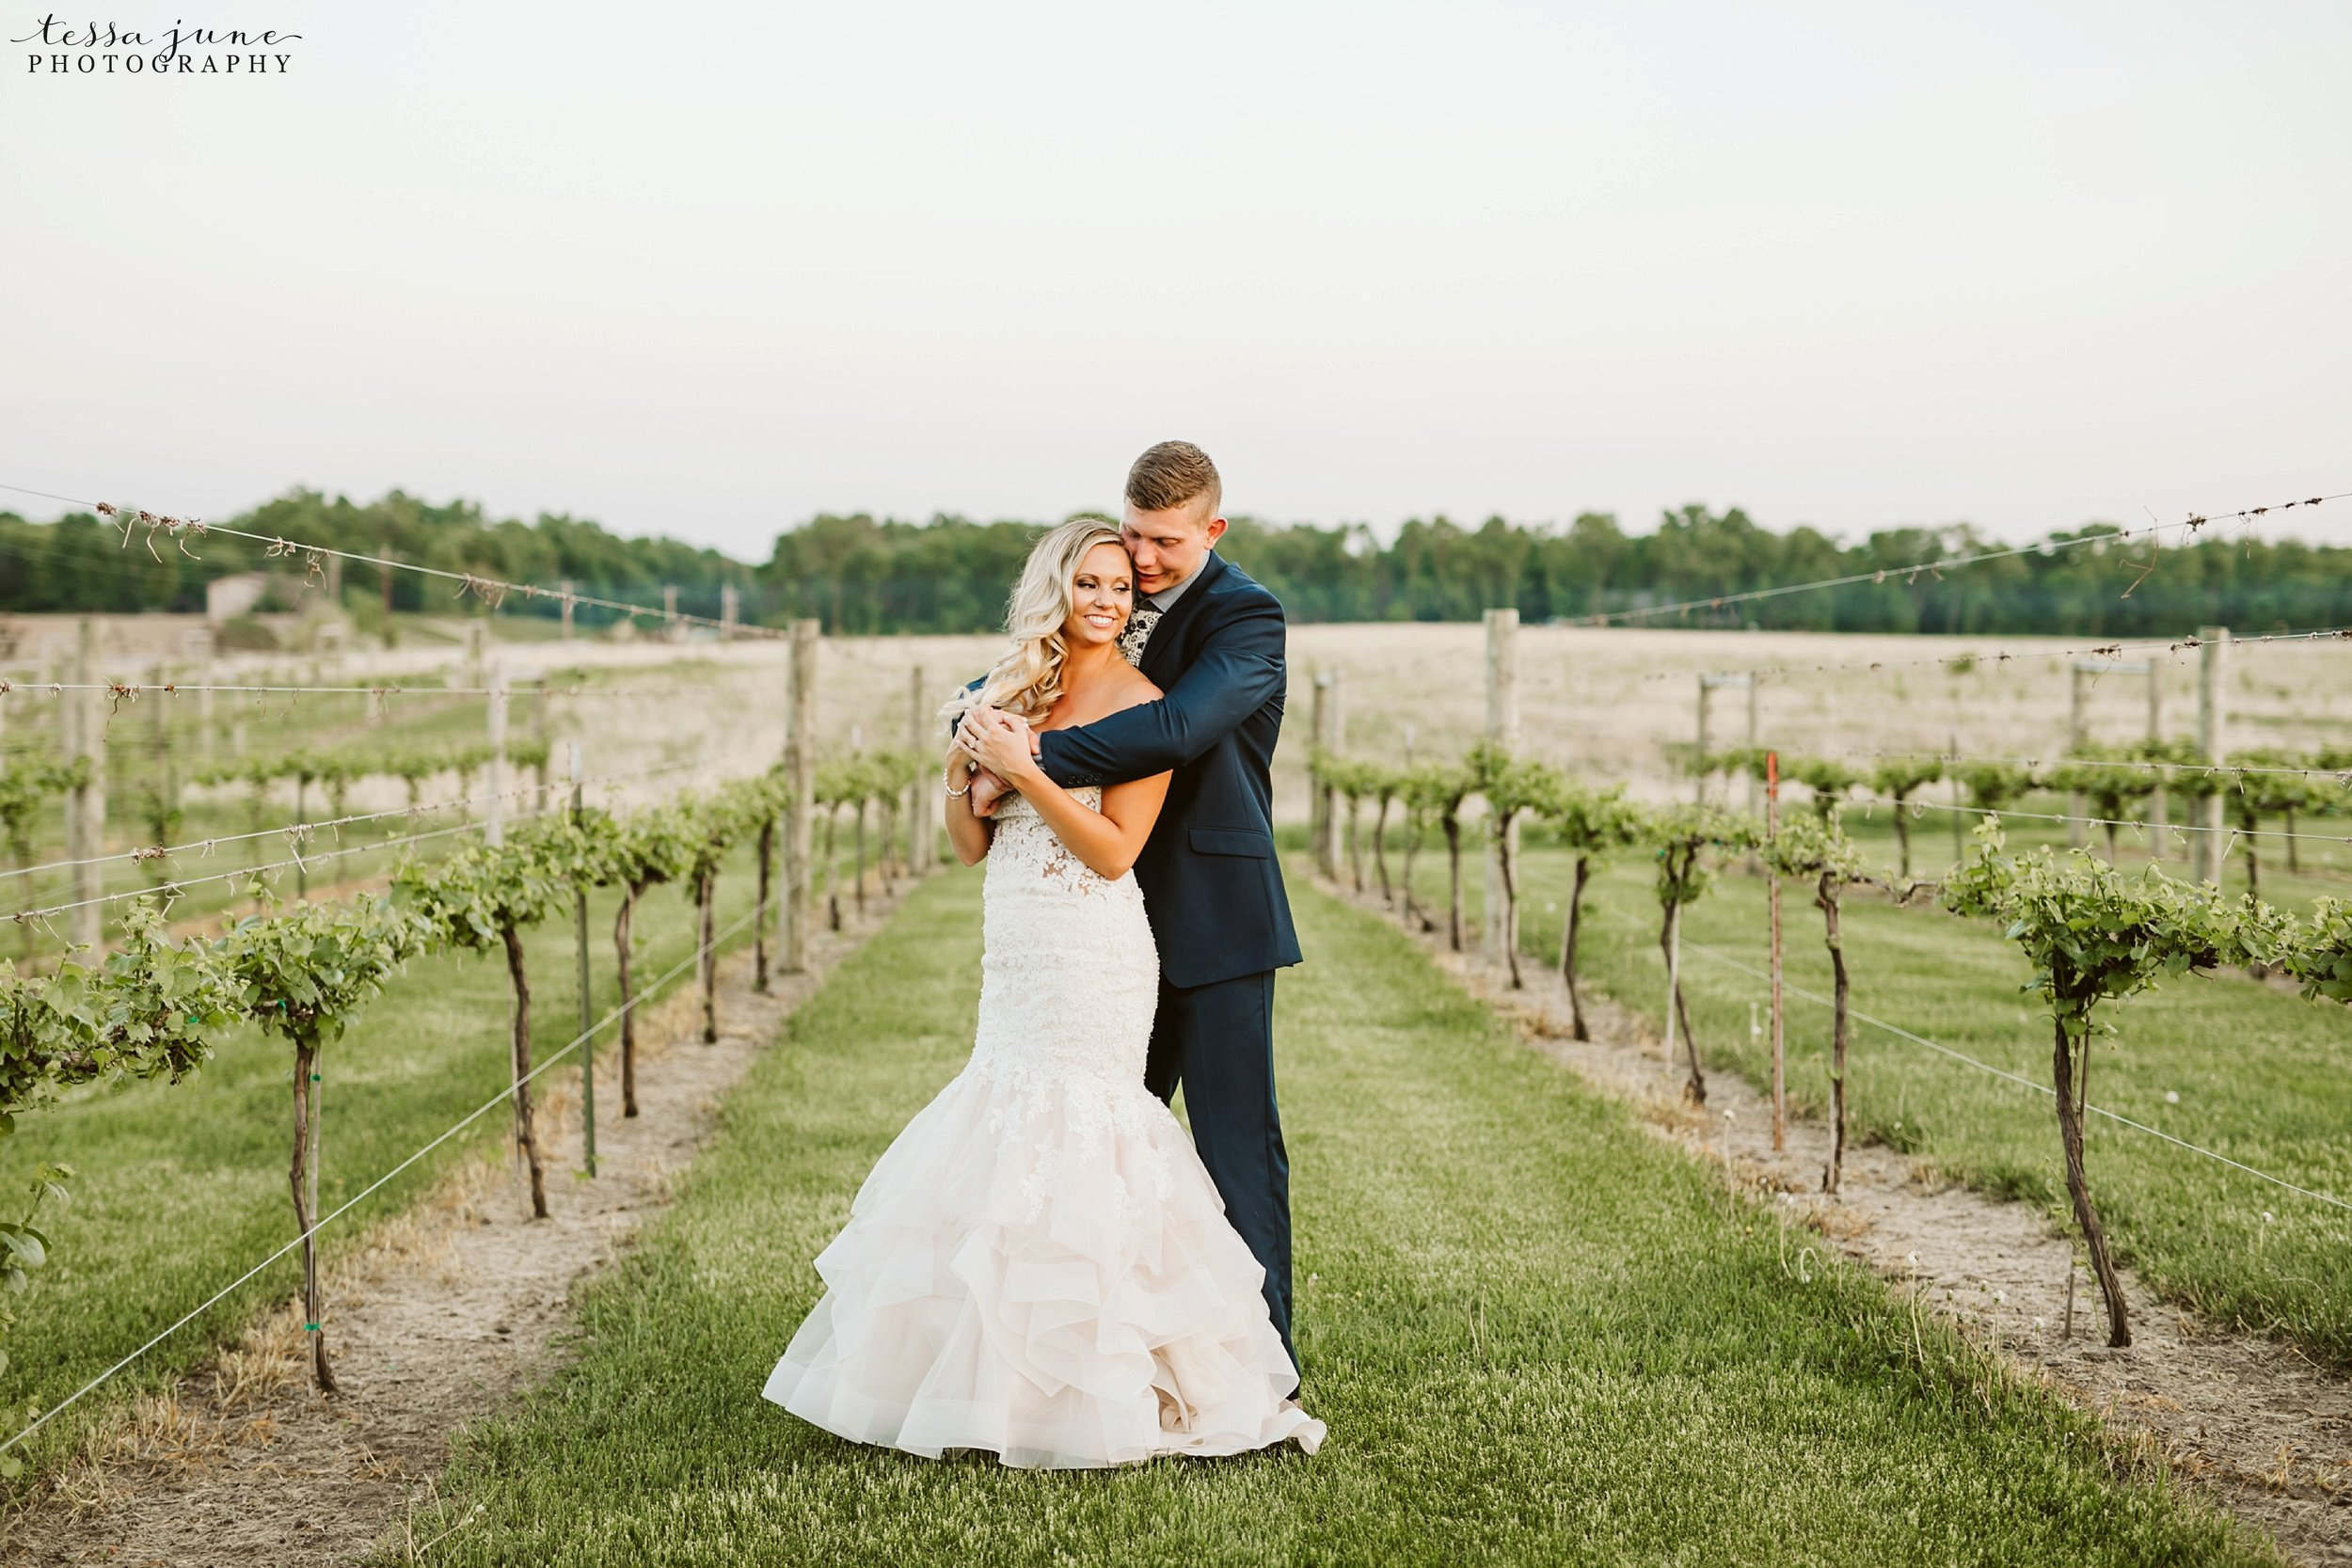 carlos-creek-winery-wedding-alexandria-minnesota-glam-elegant-floral-159.jpg